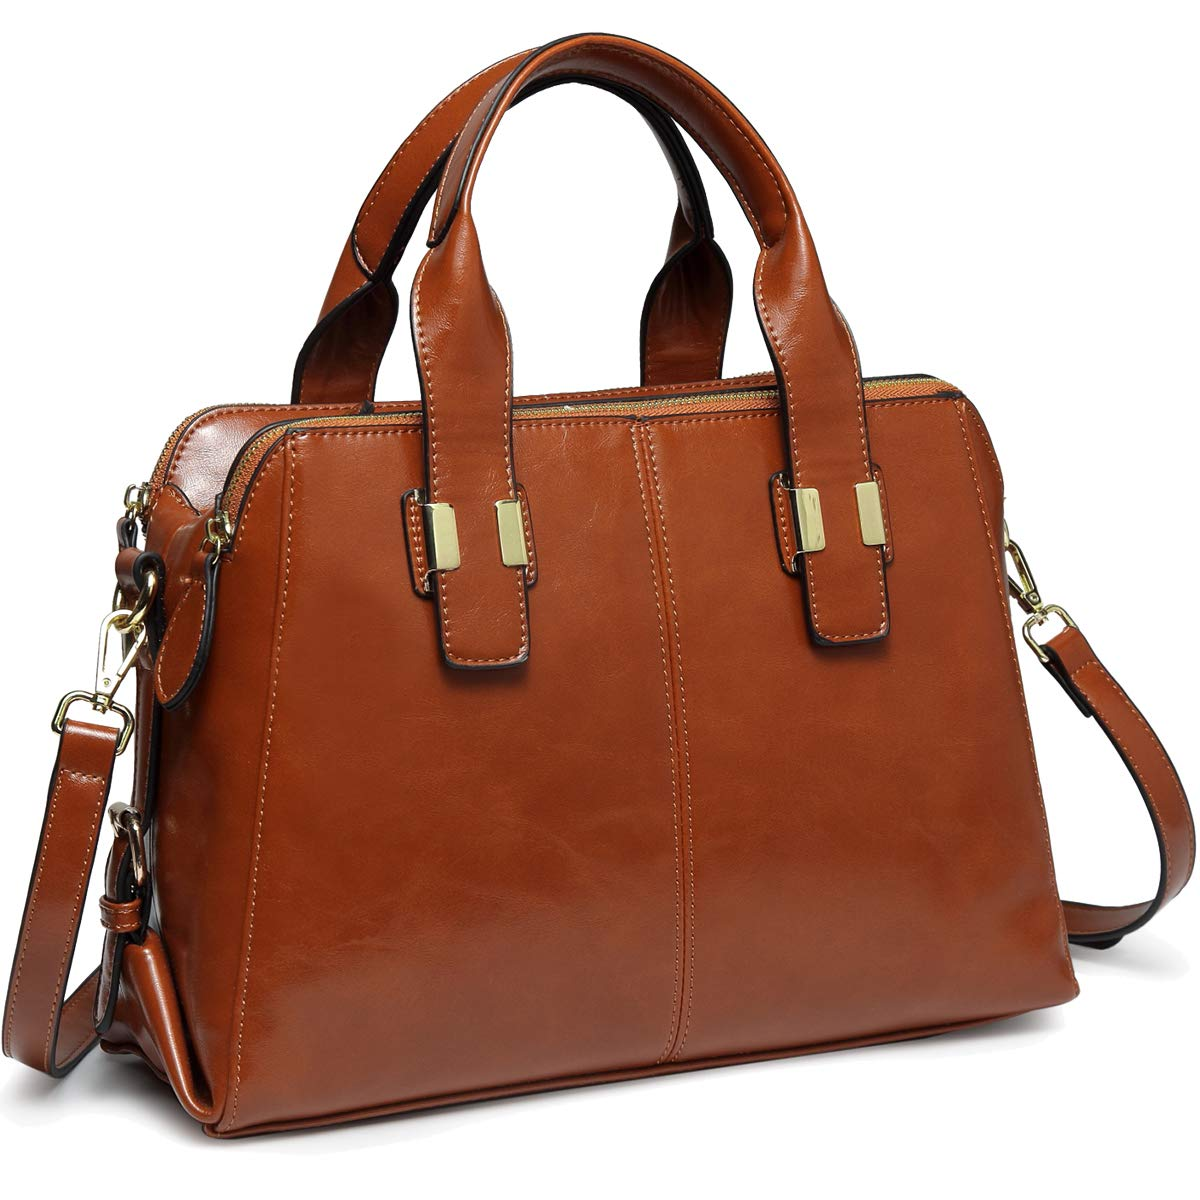 Satchel Bag for Women, VASCHY Faux Patent Leather Top Handle Handbag Work Tote Purse with Triple Compartments Brown